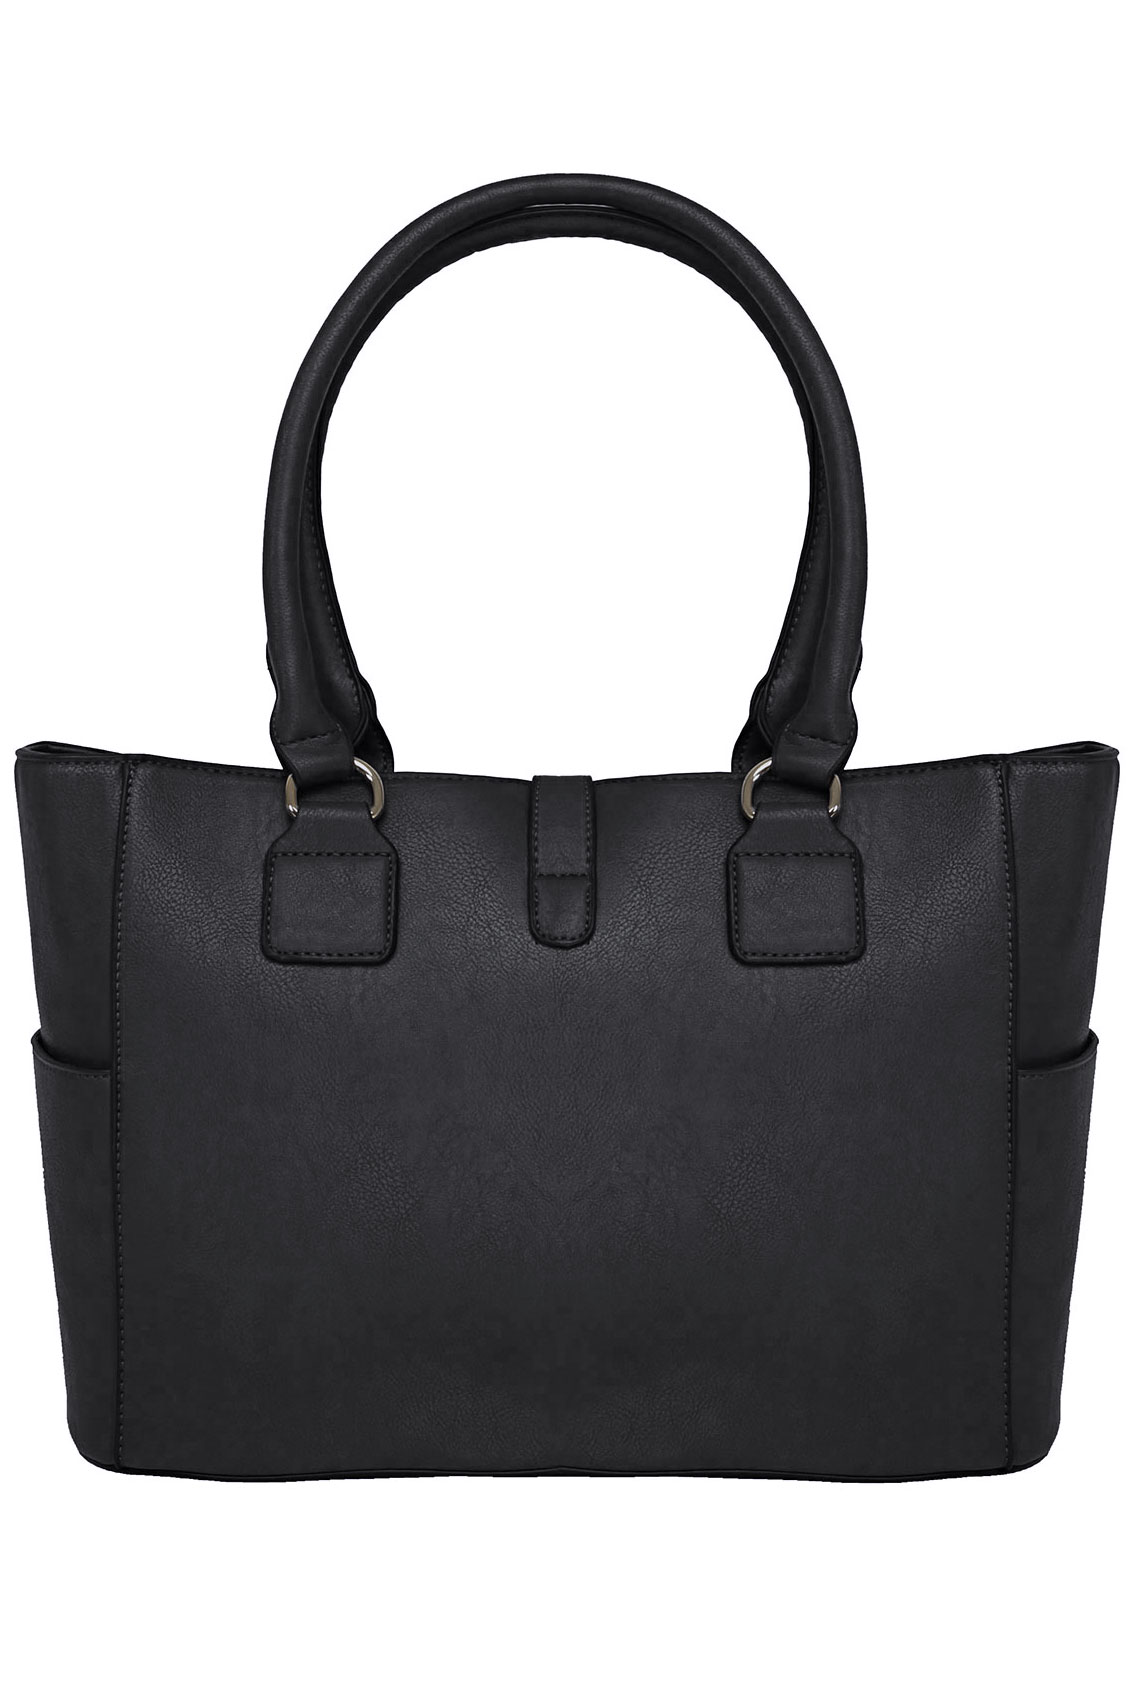 Black Structured Tote Bag With Over Strap Detail